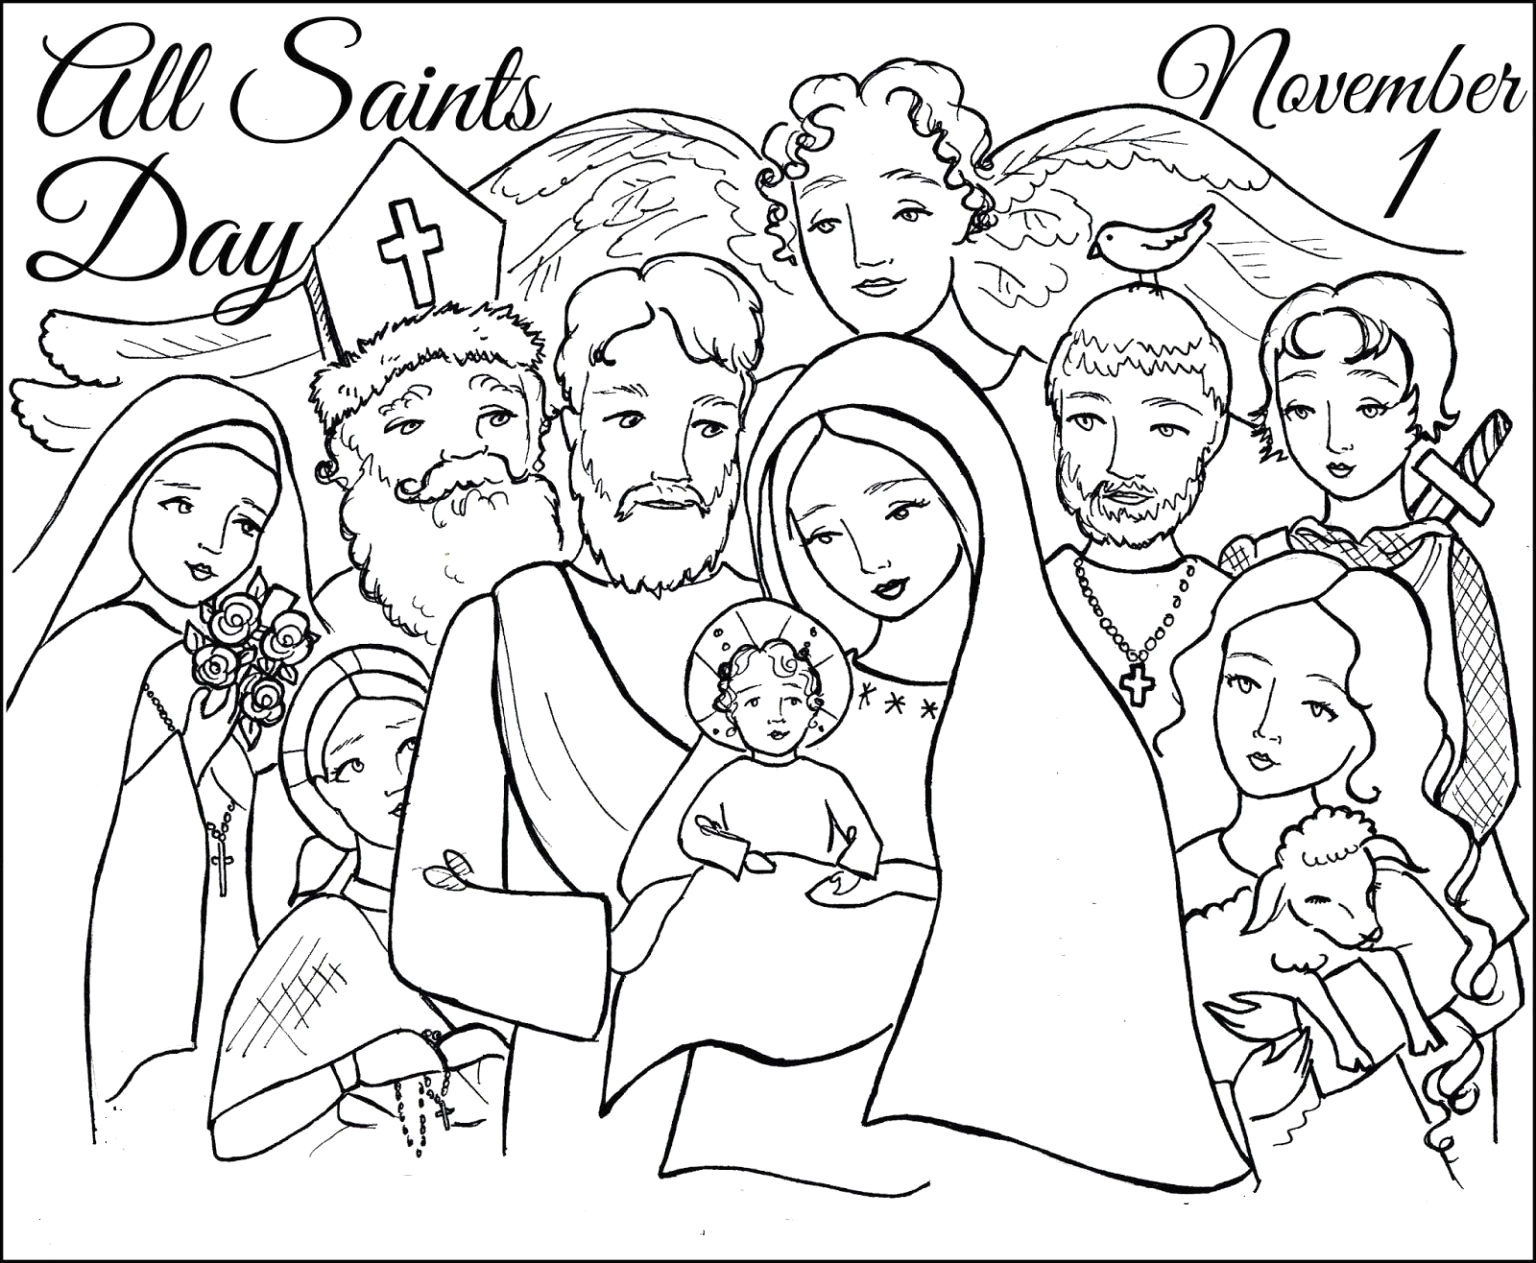 Free Printable All Saints Day Coloring Pages All Saints Day Coloring Page